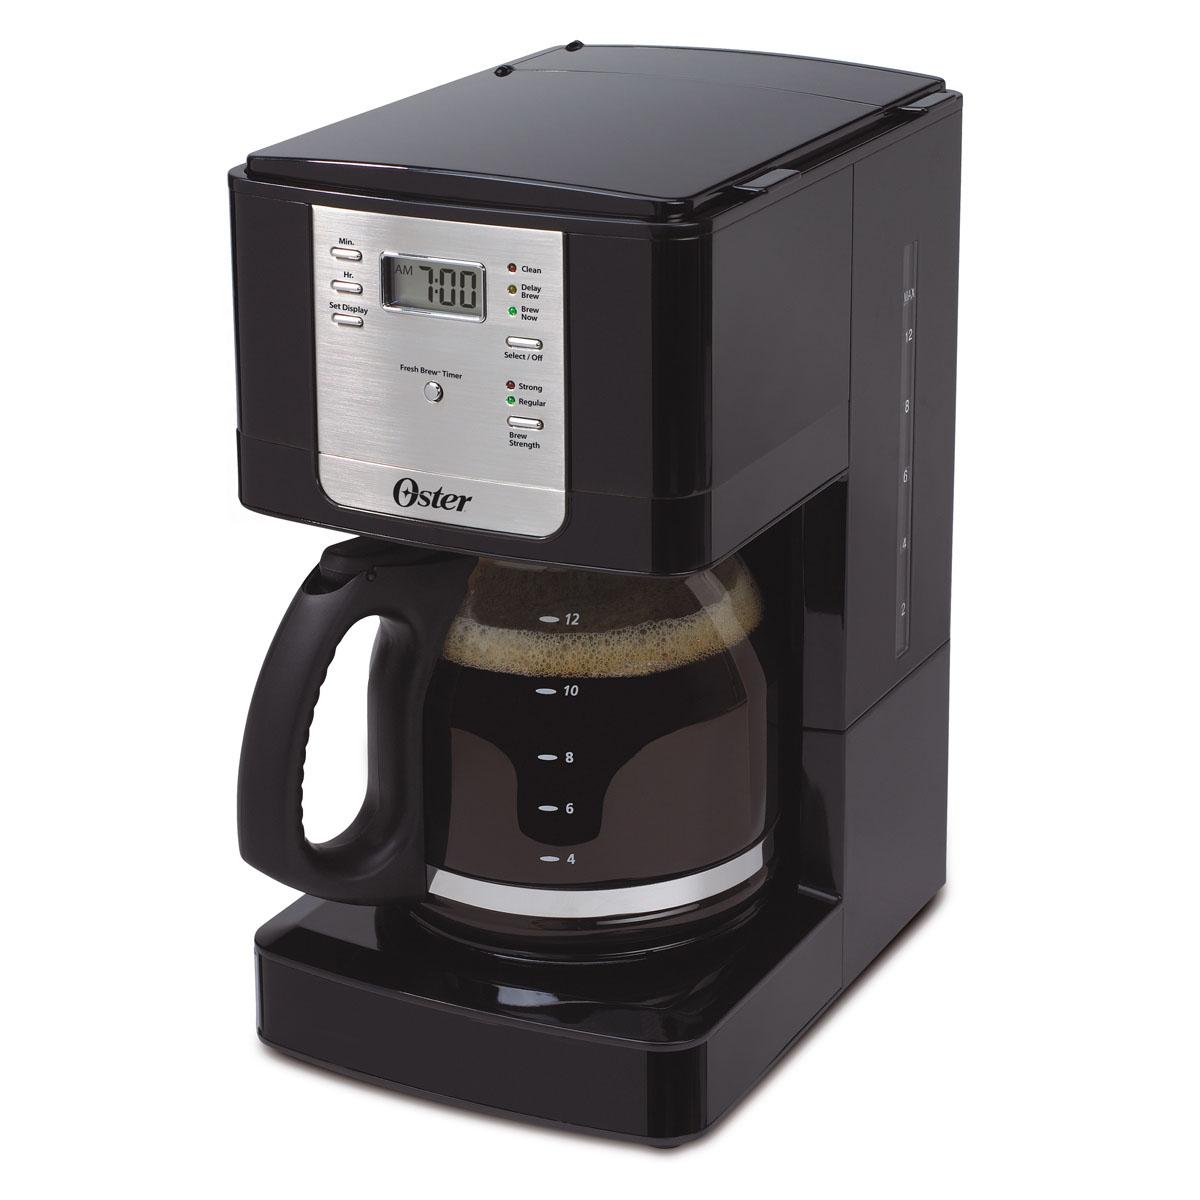 Oster 12 cup programmable coffee maker 3312 33 parts Coffee maker brands